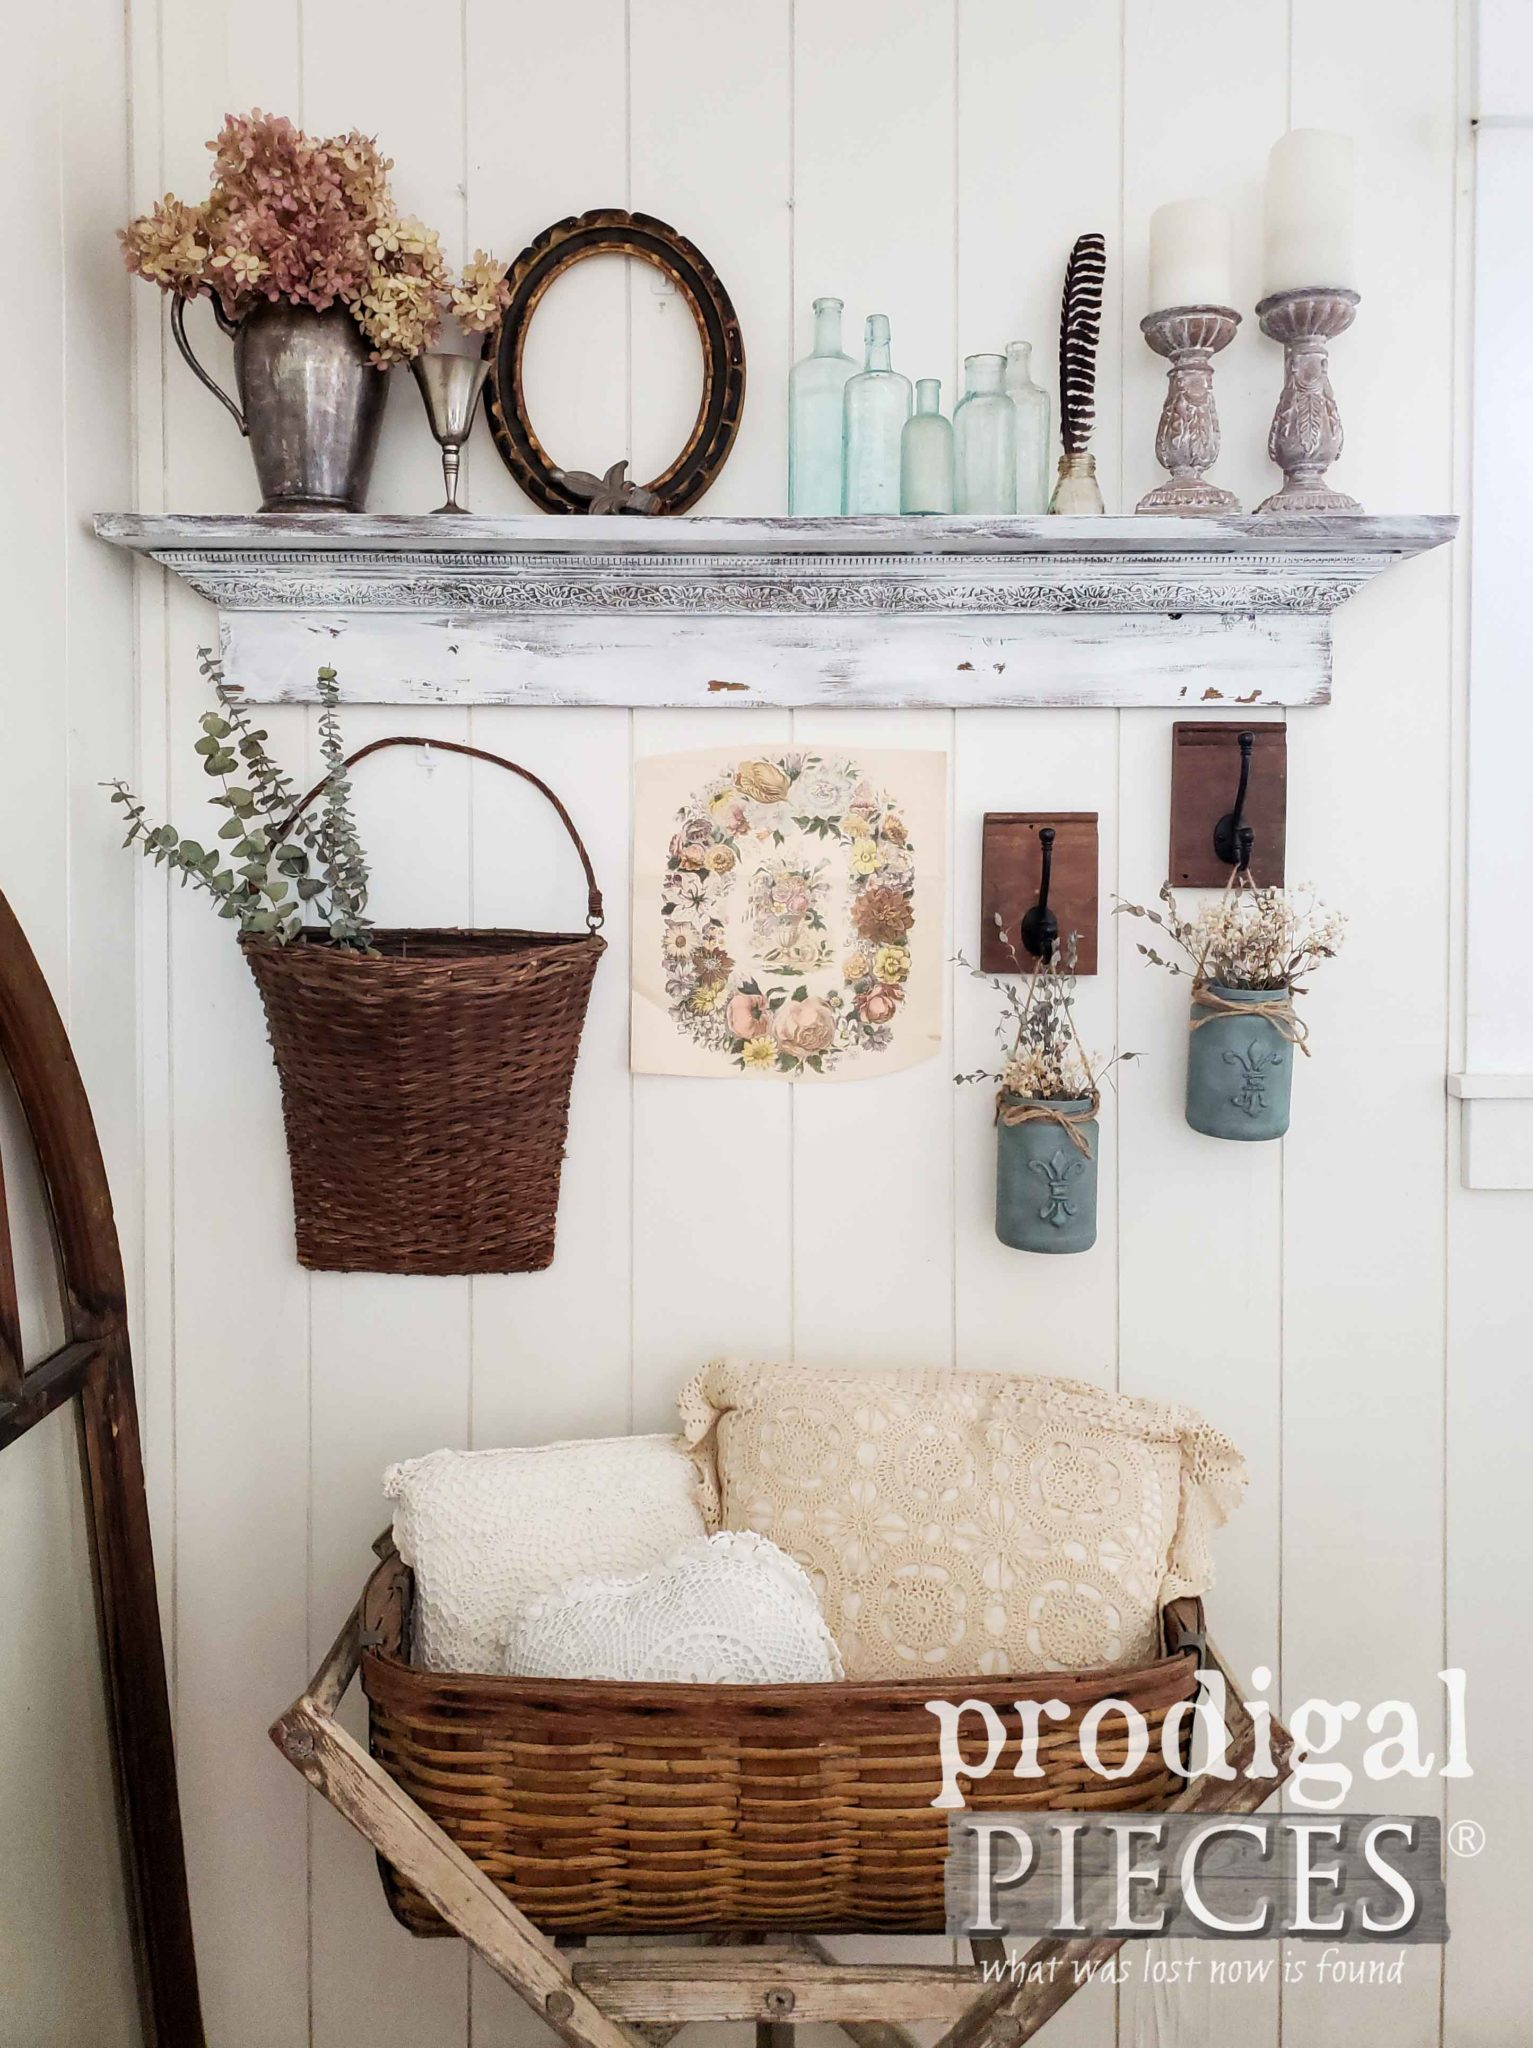 DIY decor in this romantic chic vignette by Larissa of Prodigal Pieces | prodigalpieces.com